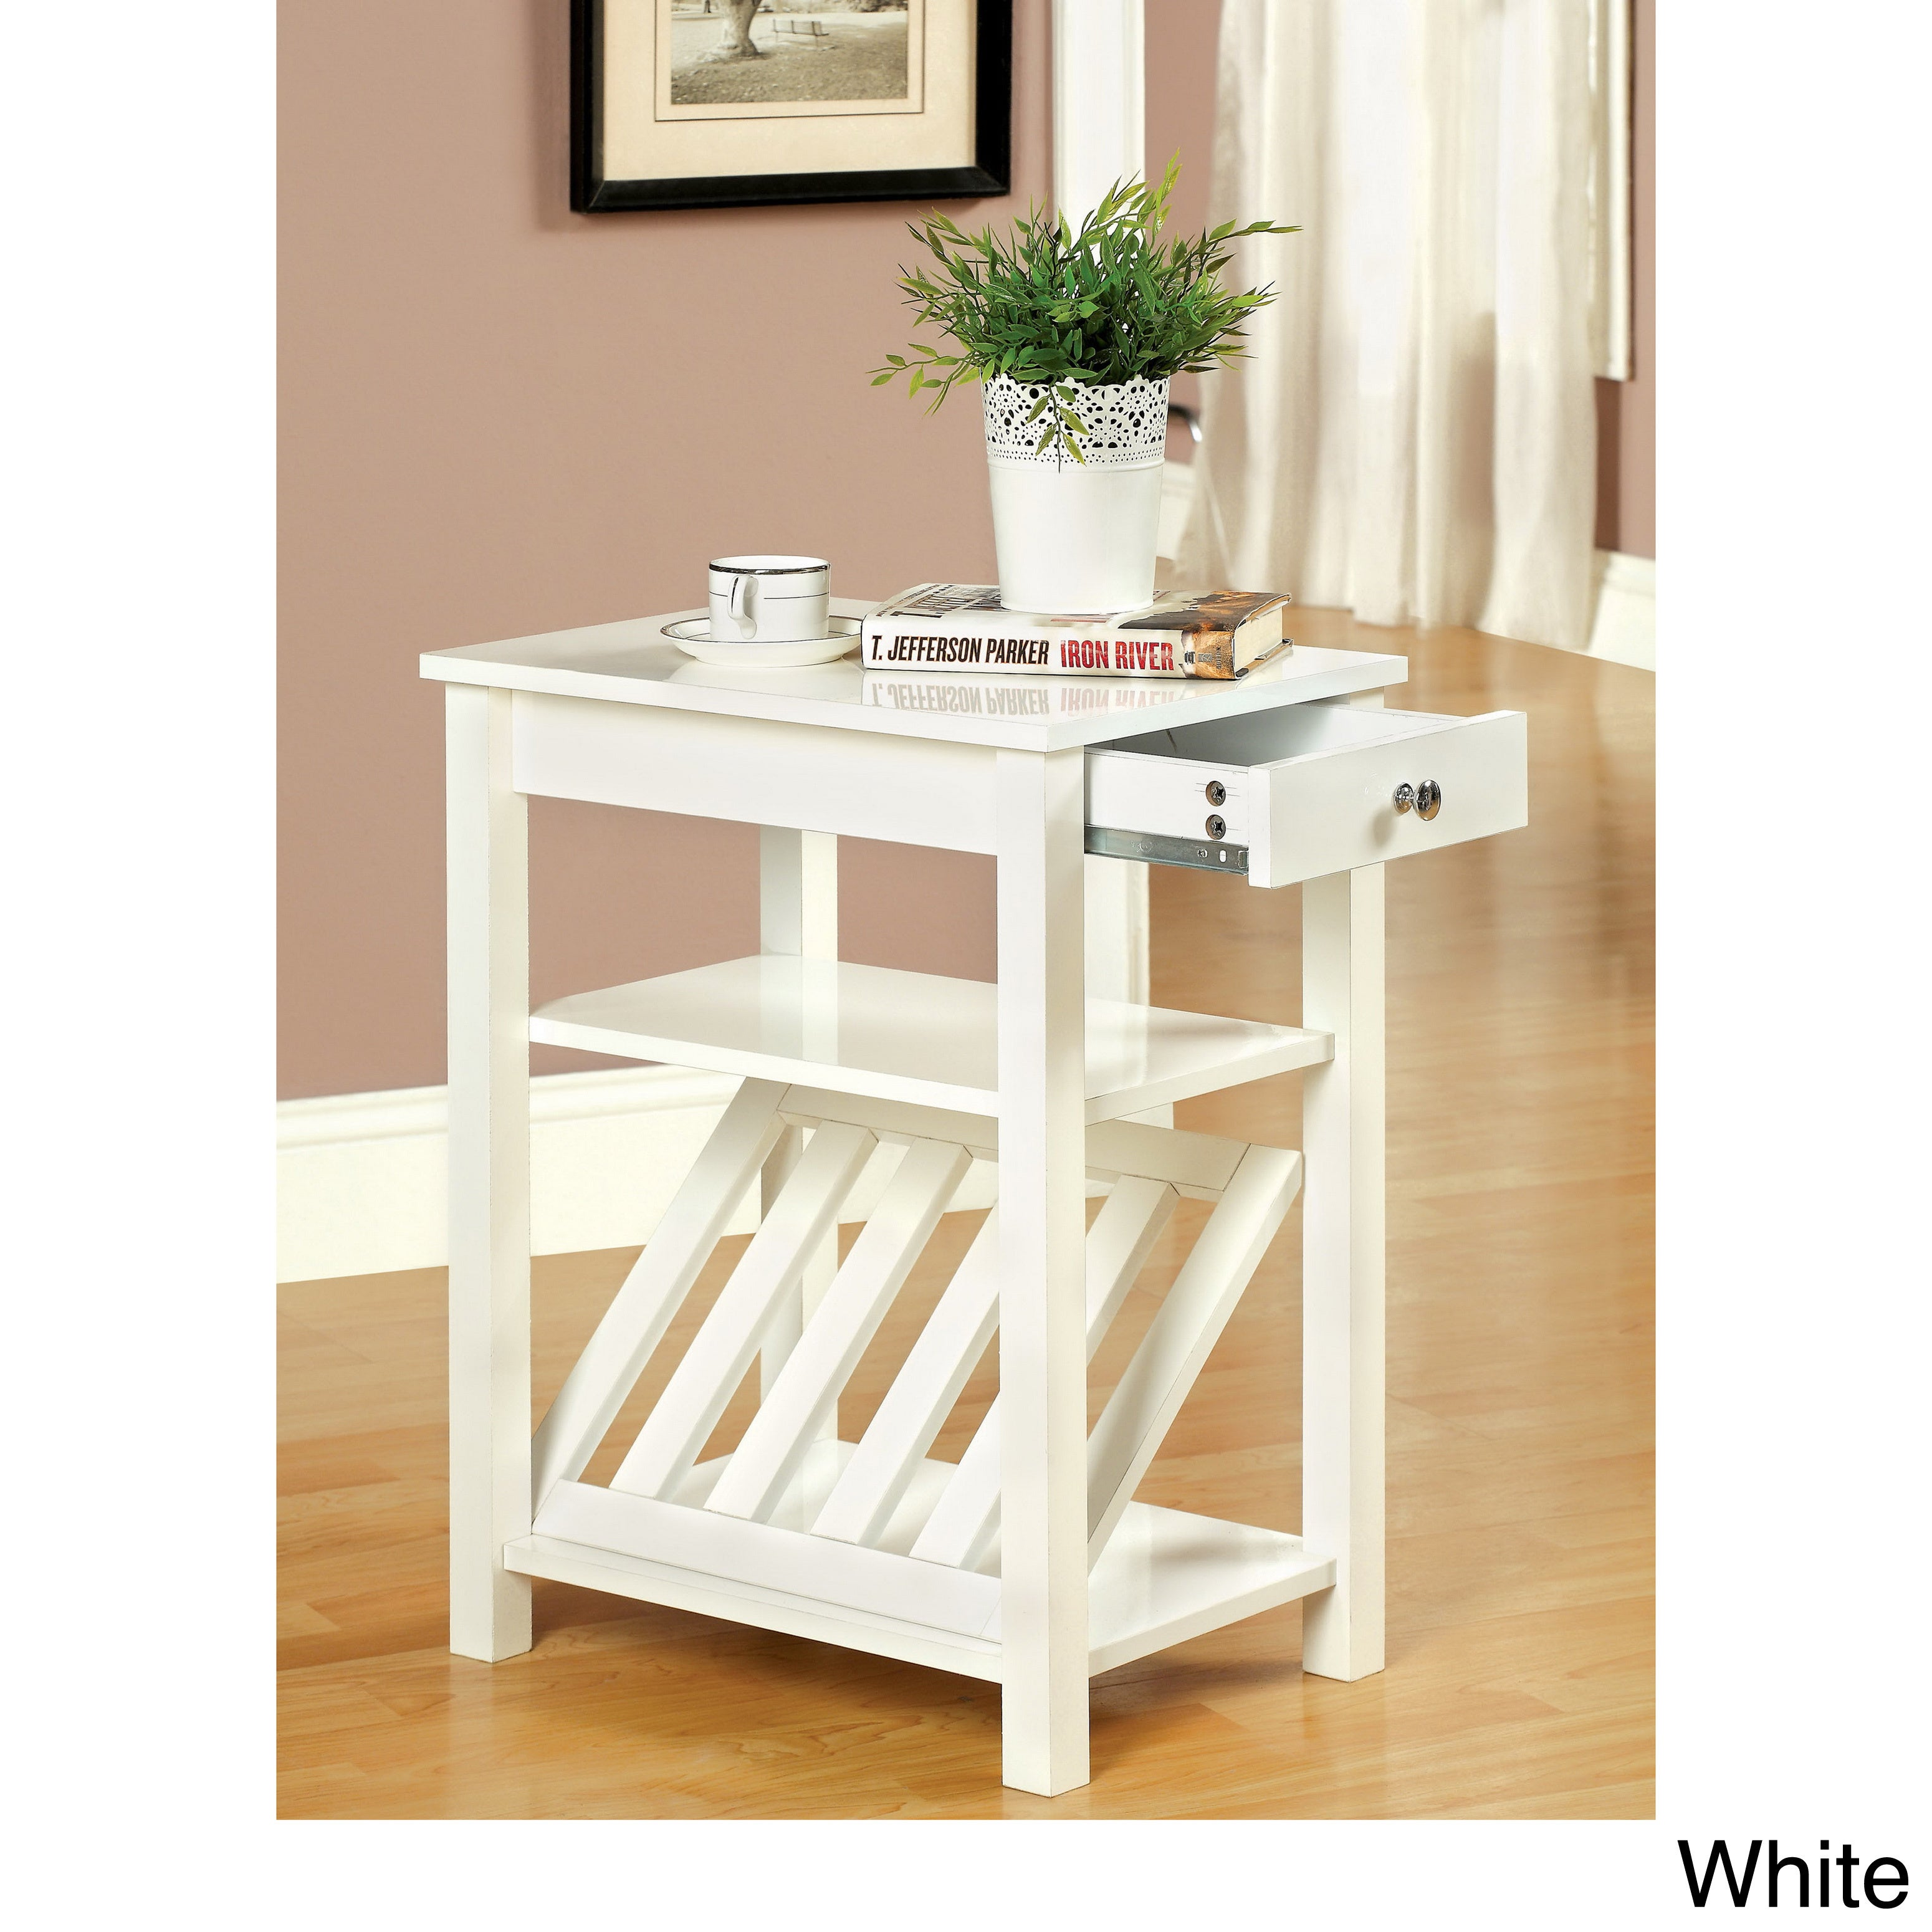 Furniture of America Corin Accent Table with Storage Draw...